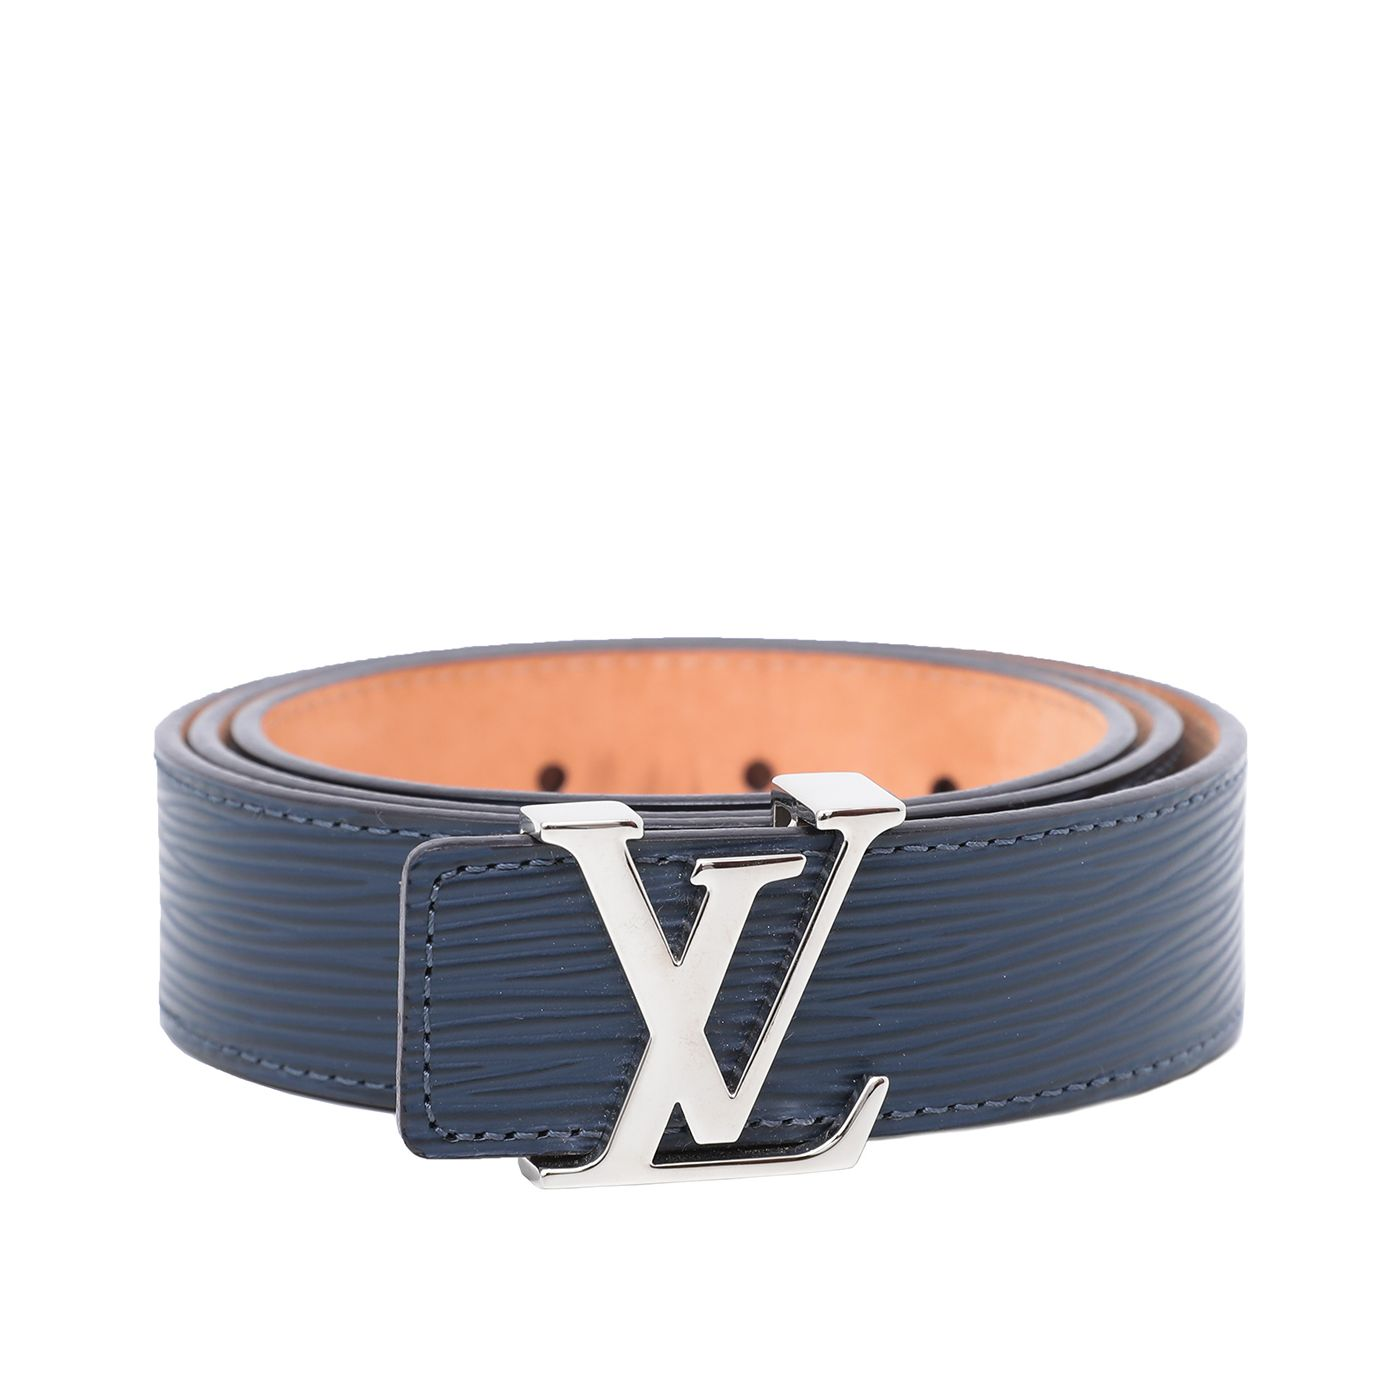 Louis Vuitton Indigo Initials Belt 34